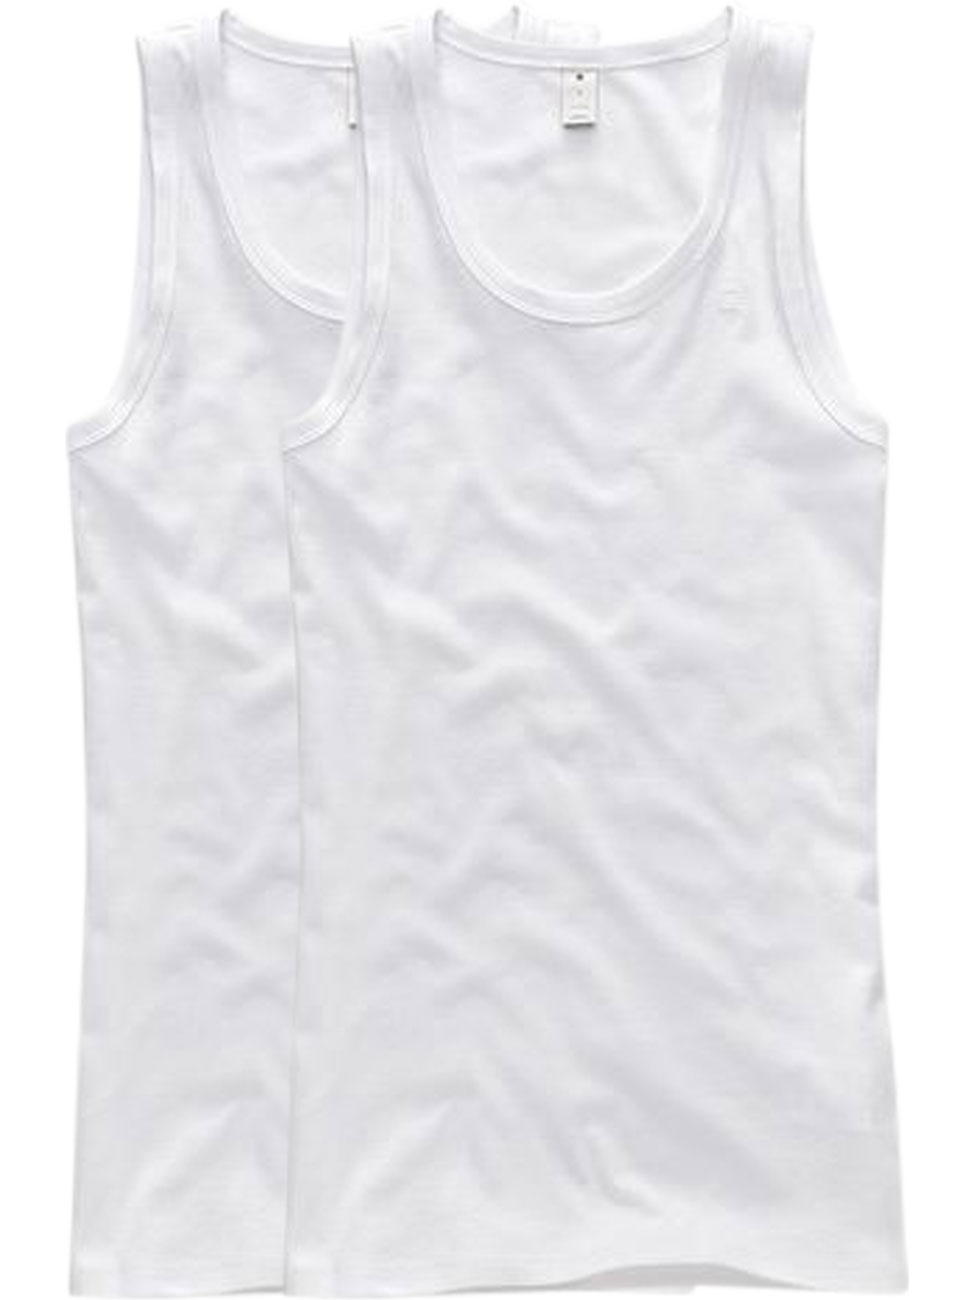 g-star-herren-tank-top-basic-2er-pack